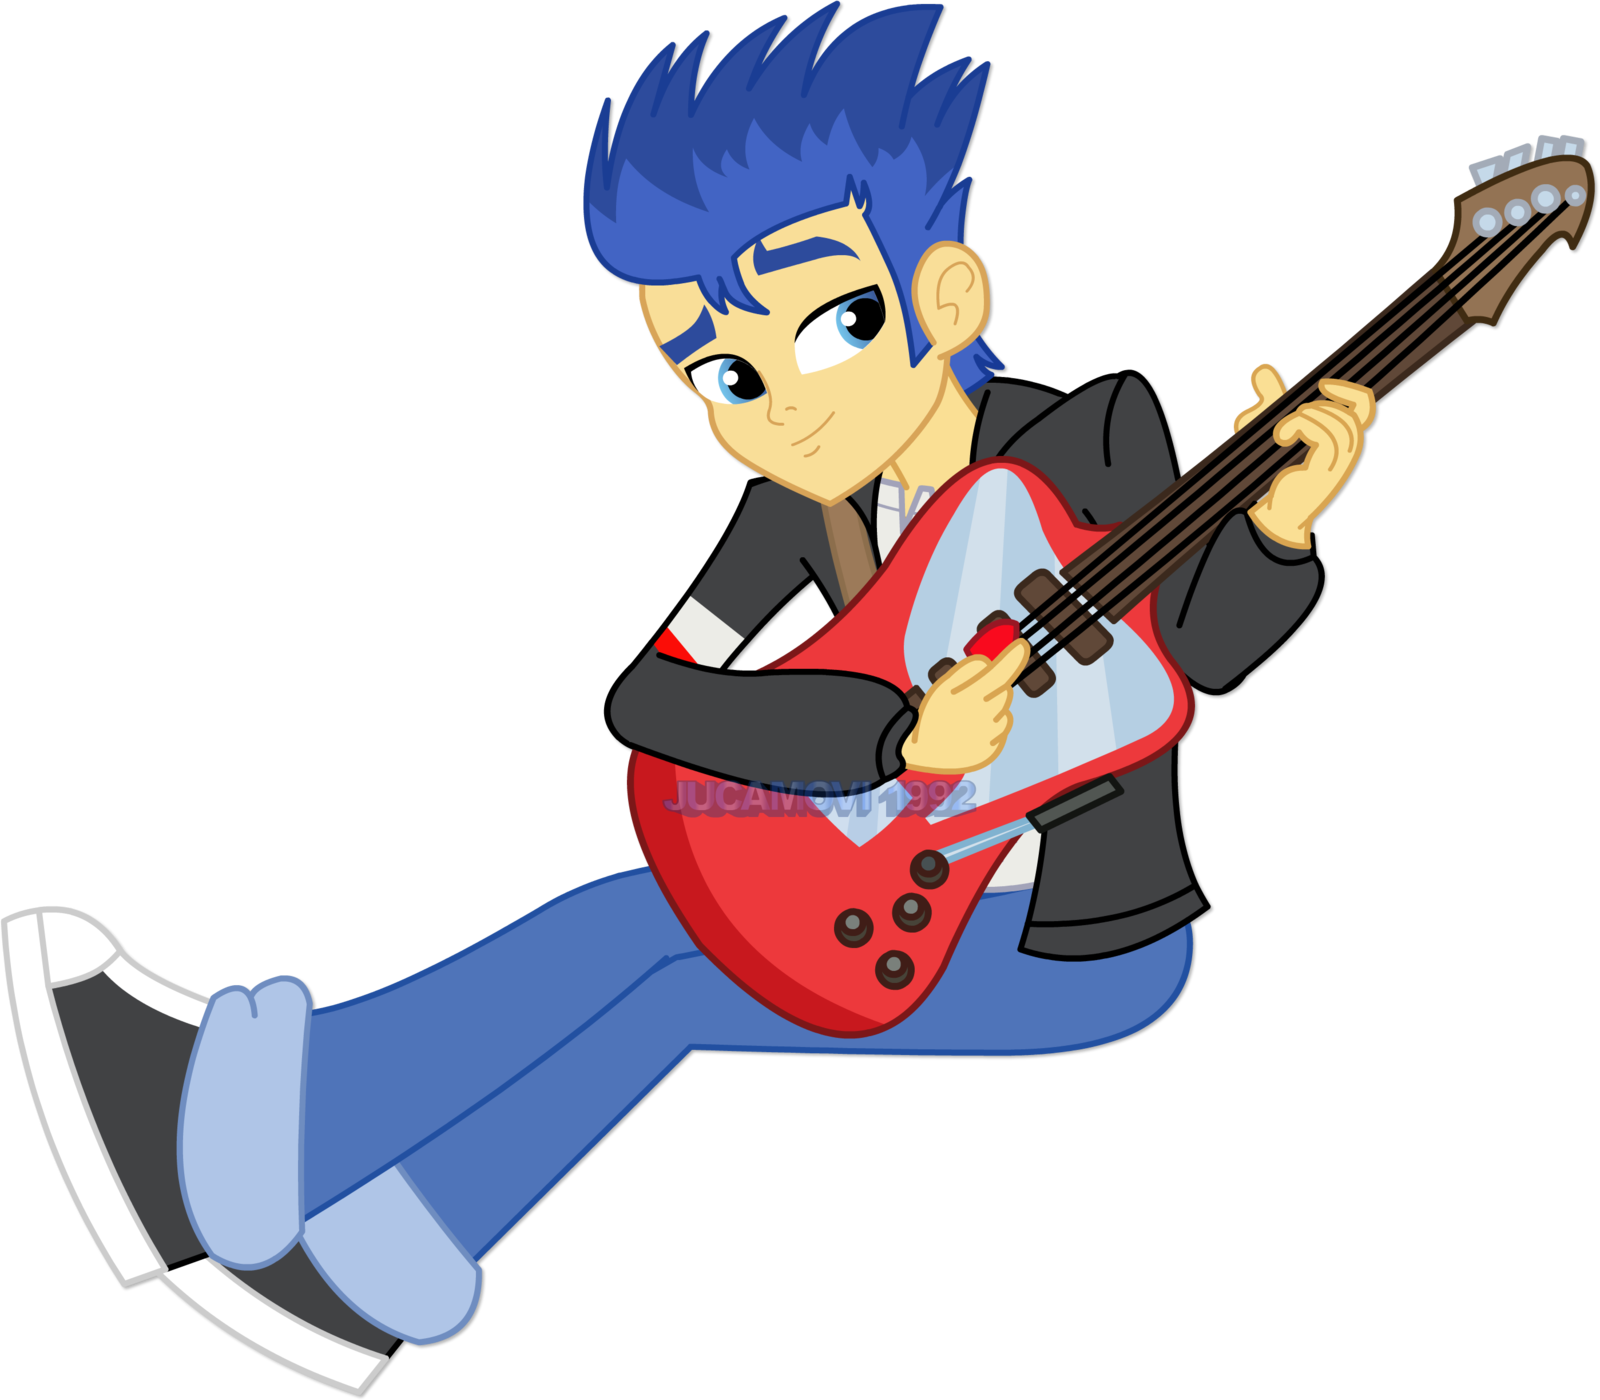 1600x1400 Flash Sentry Playing The Guitar By Jucamovi1992